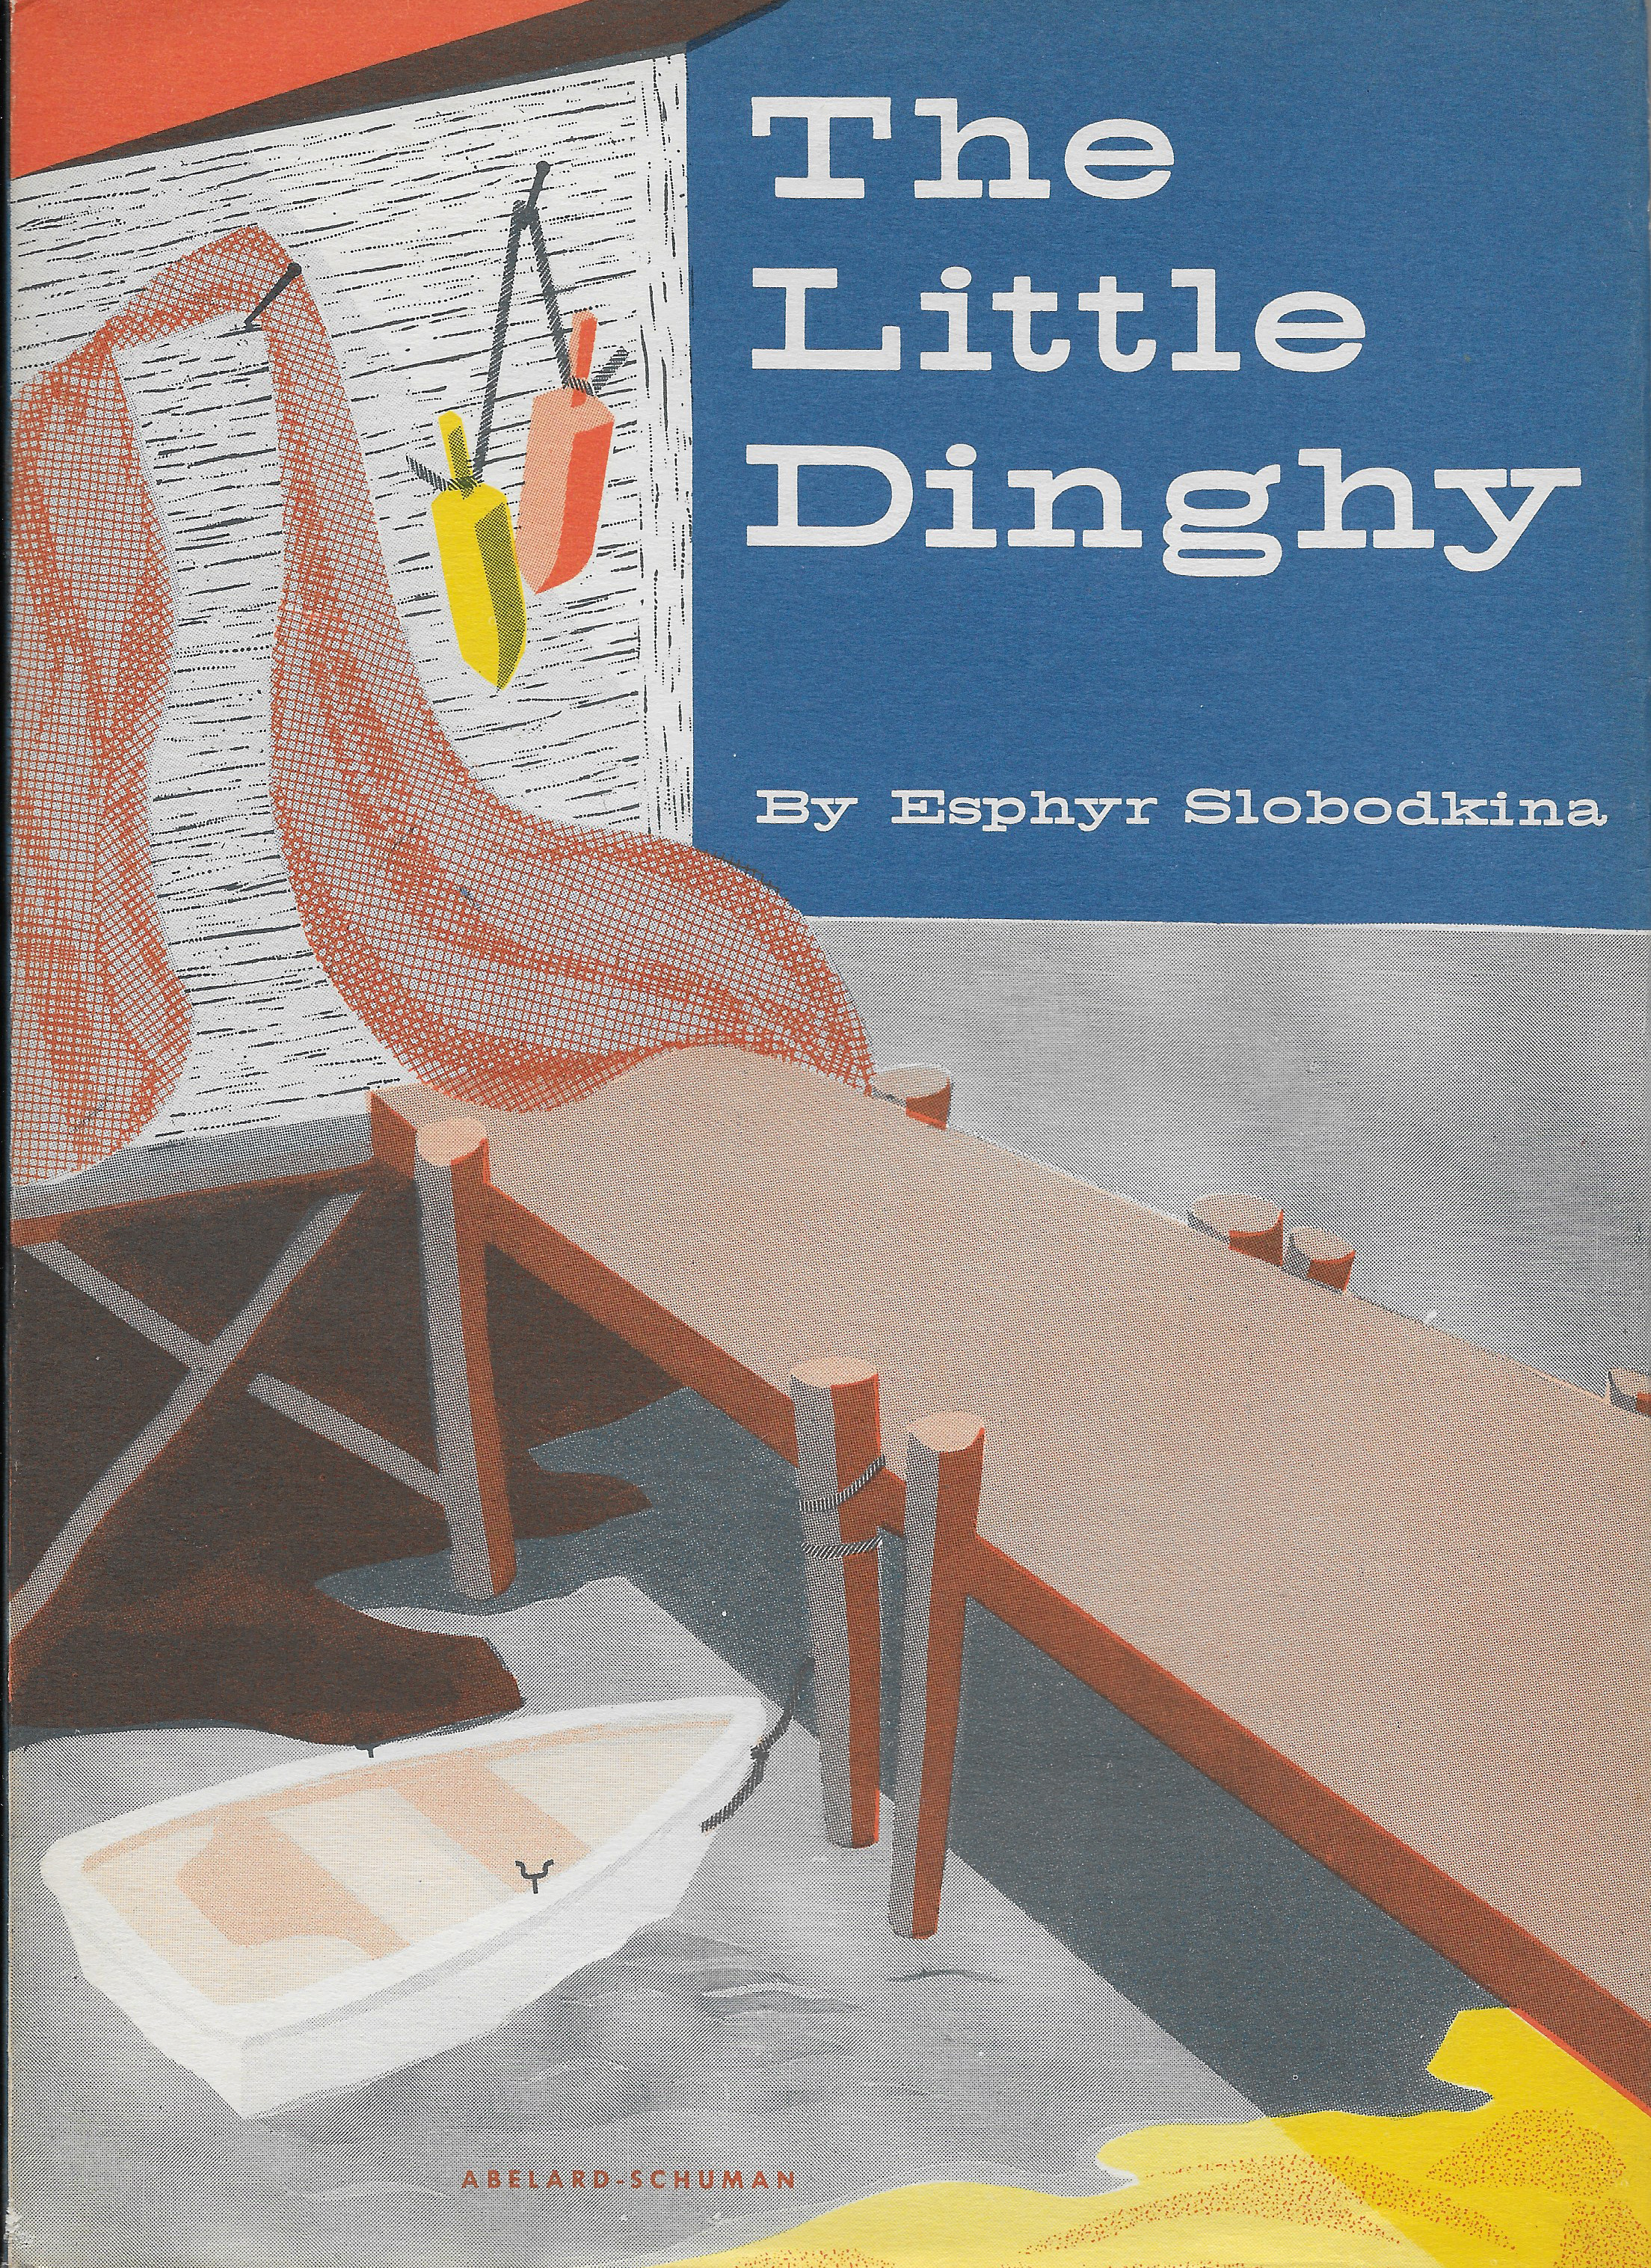 The little dinghy